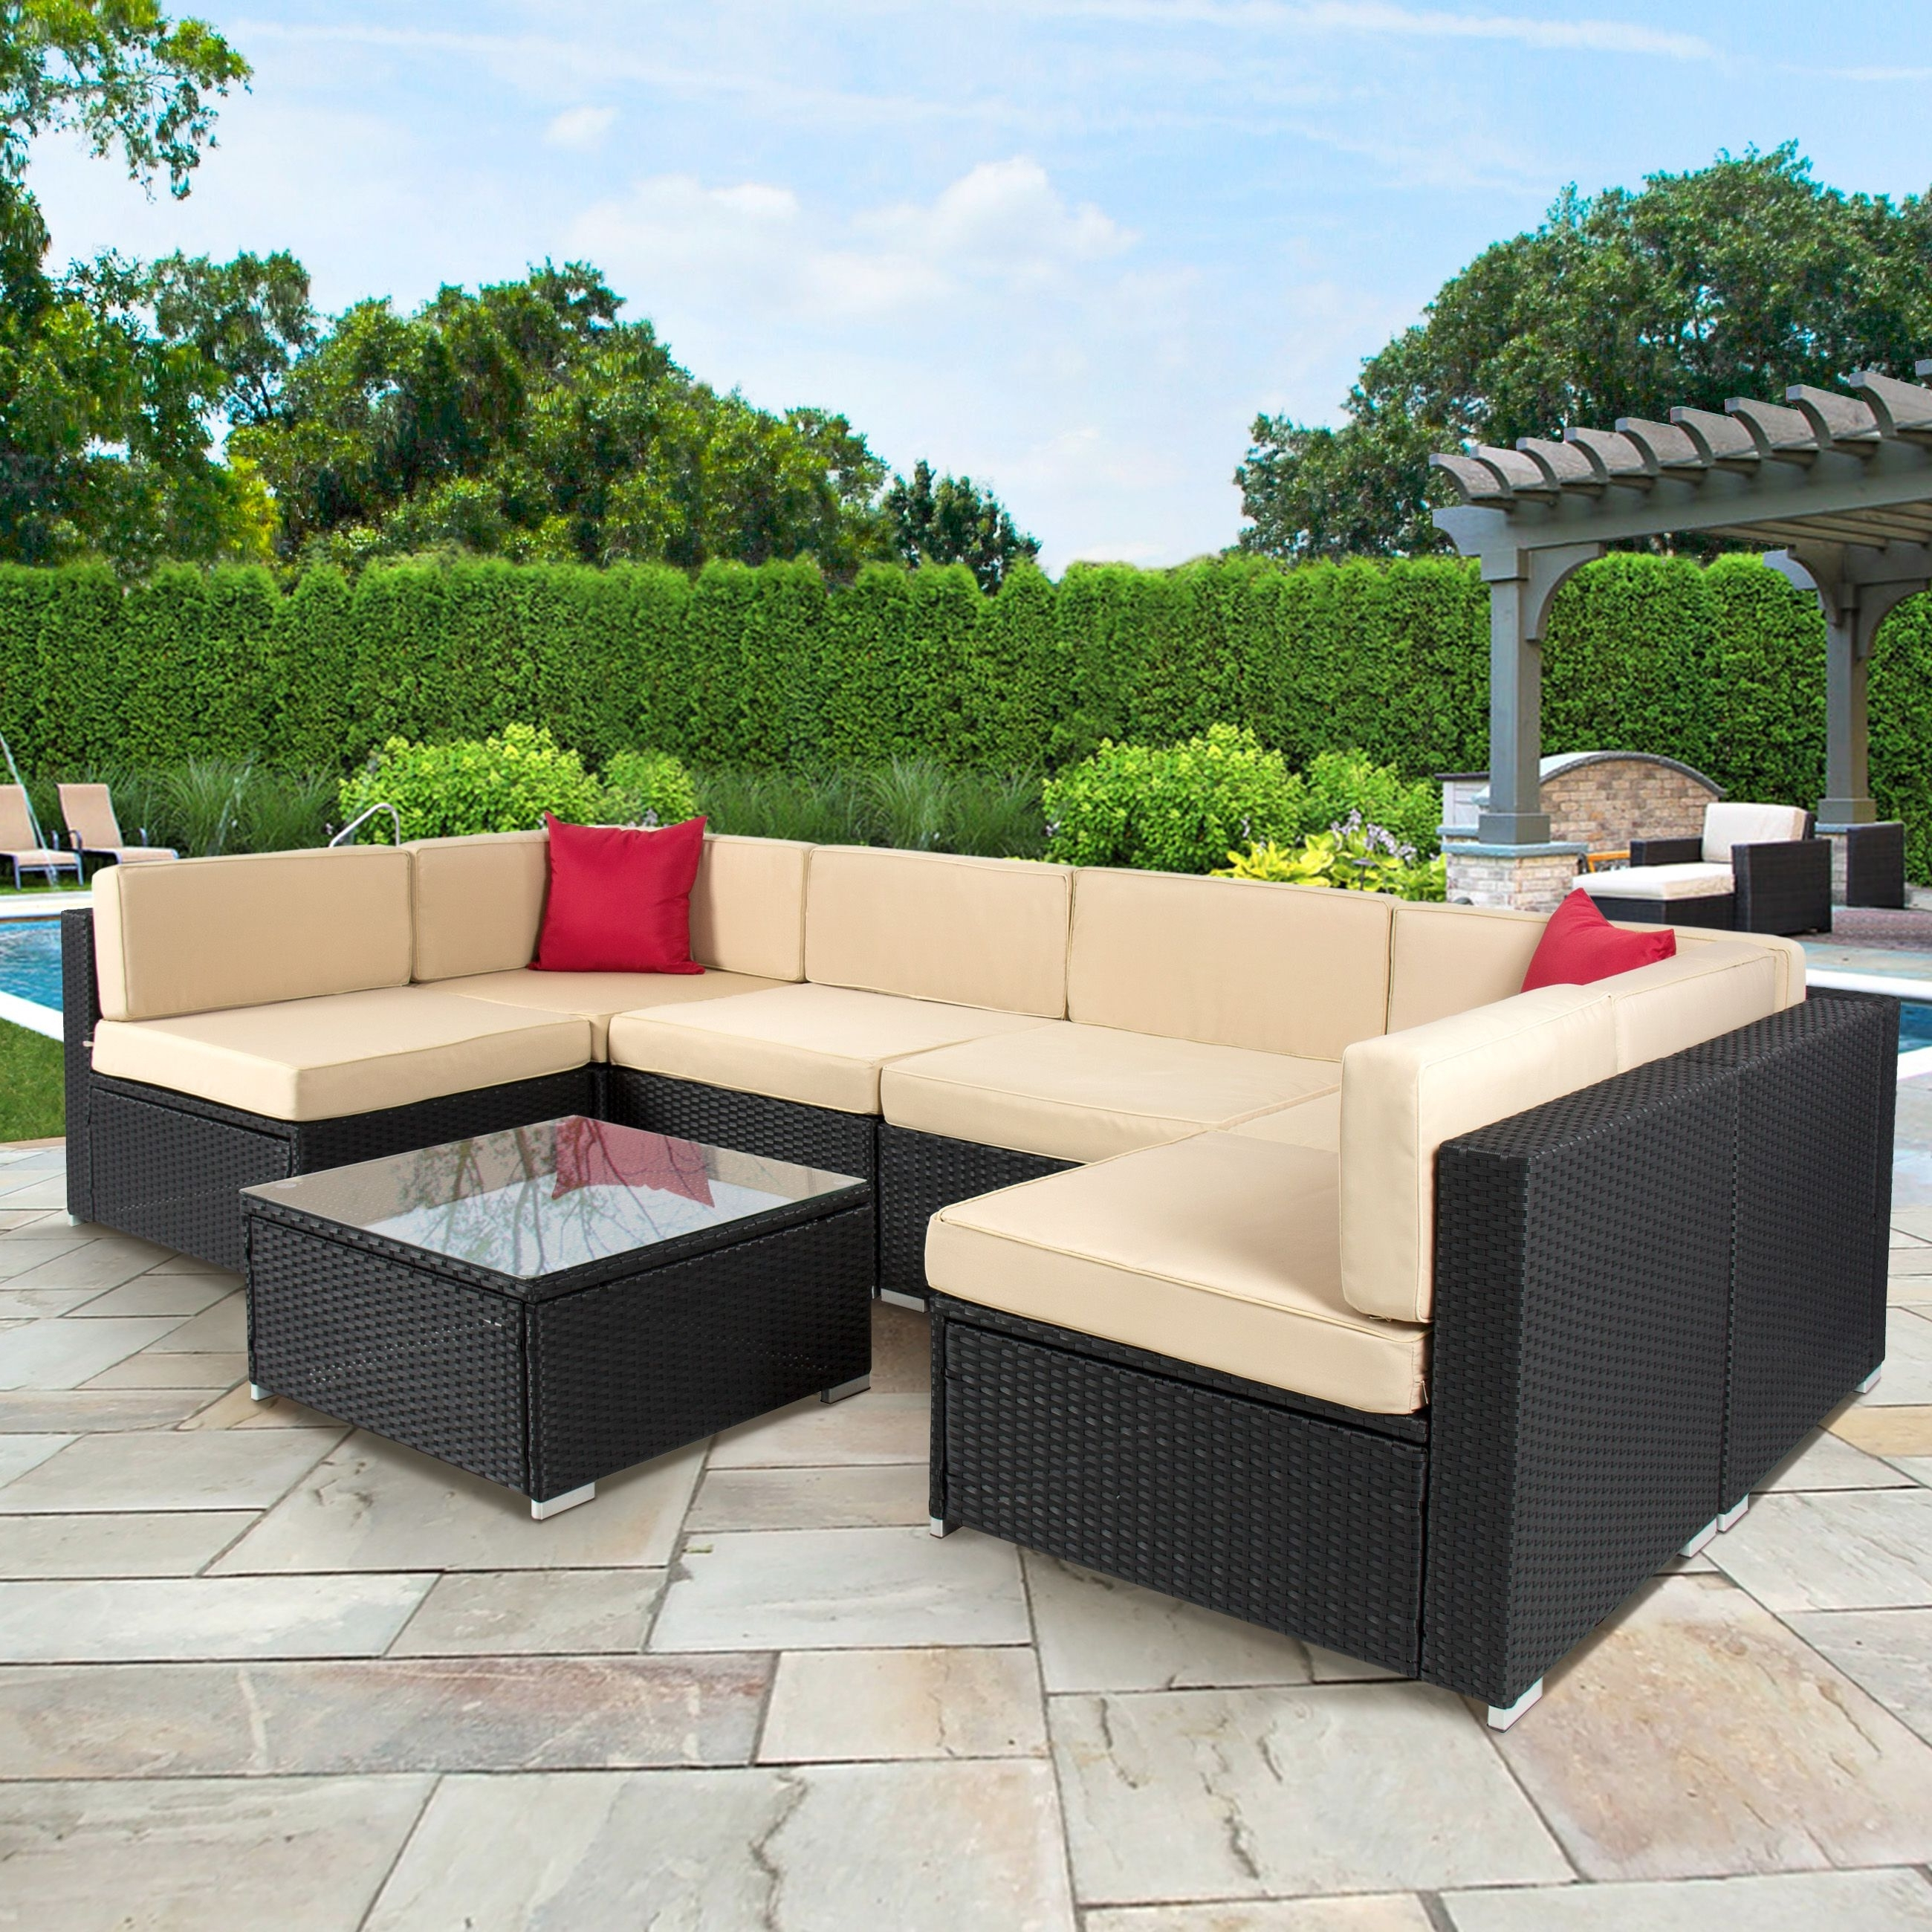 Outdoor Sofa Chairs Pertaining To Fashionable 7Pc Outdoor Patio Garden Wicker Furniture Rattan Sofa Set (View 8 of 15)